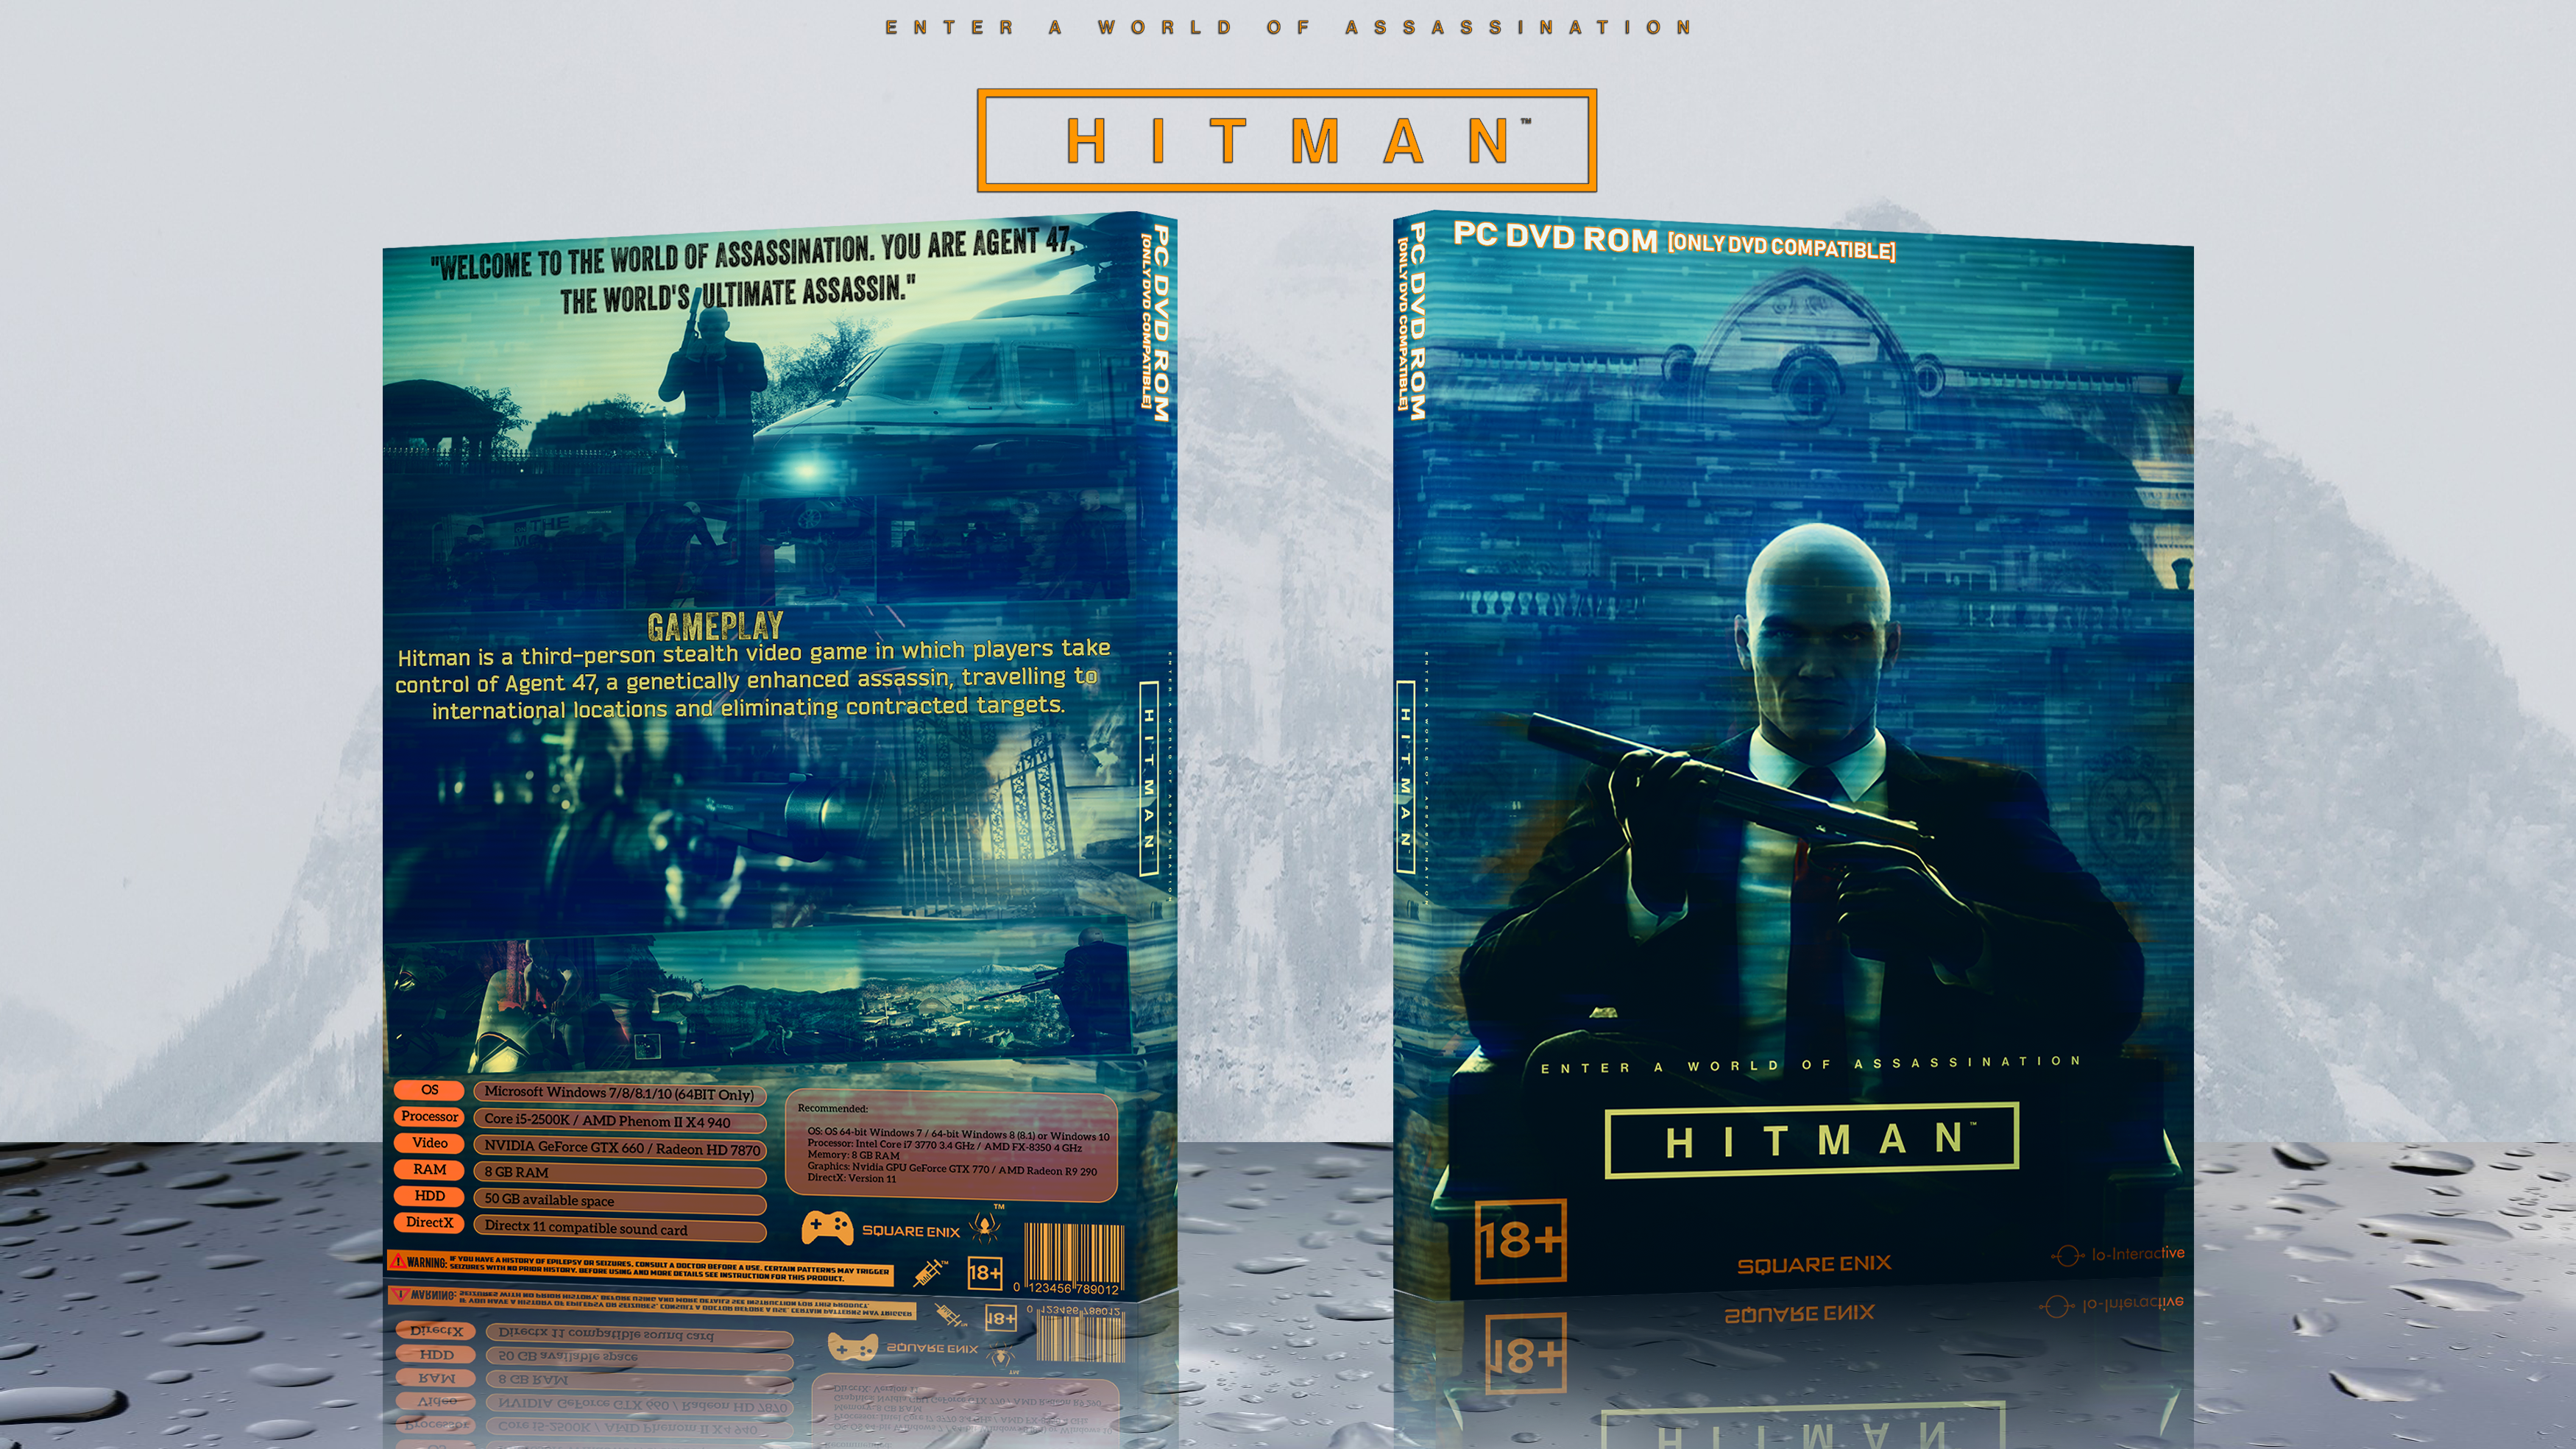 Hitman box cover